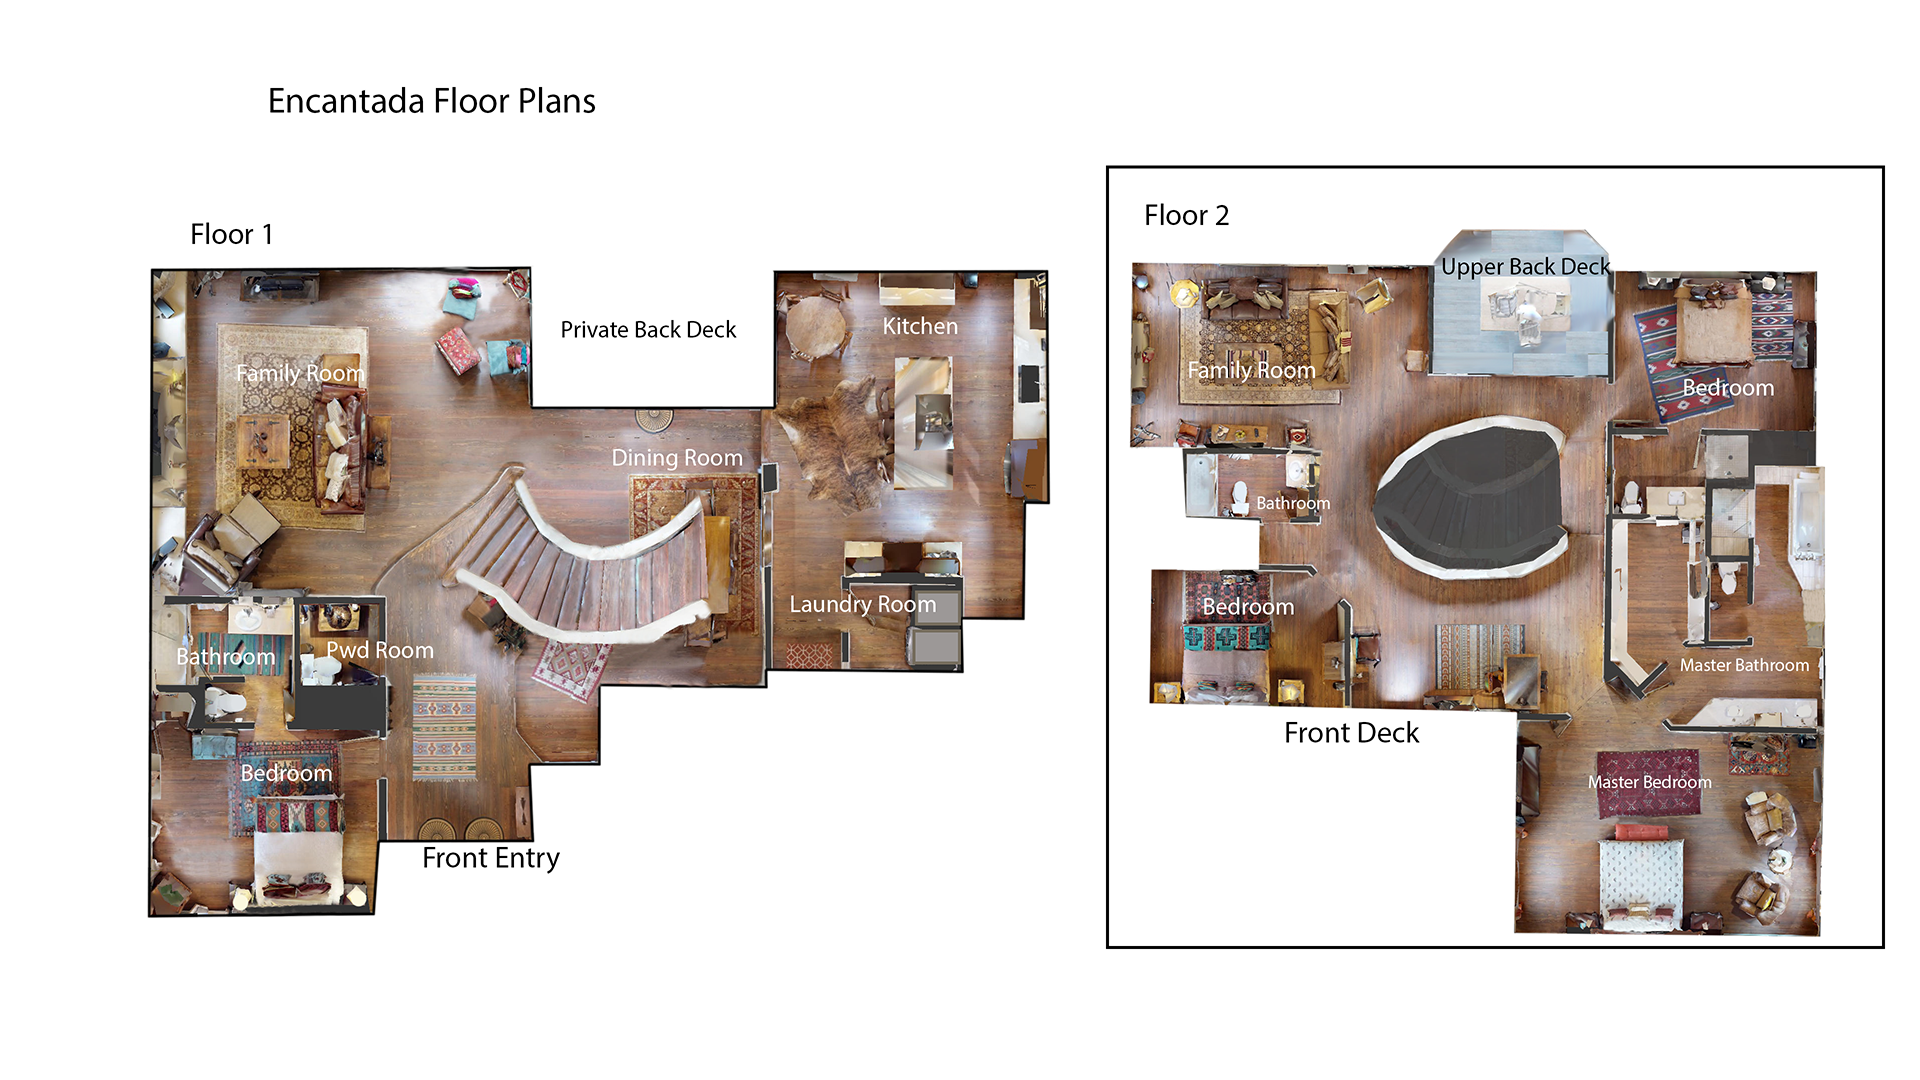 Floor Plan for Encantada